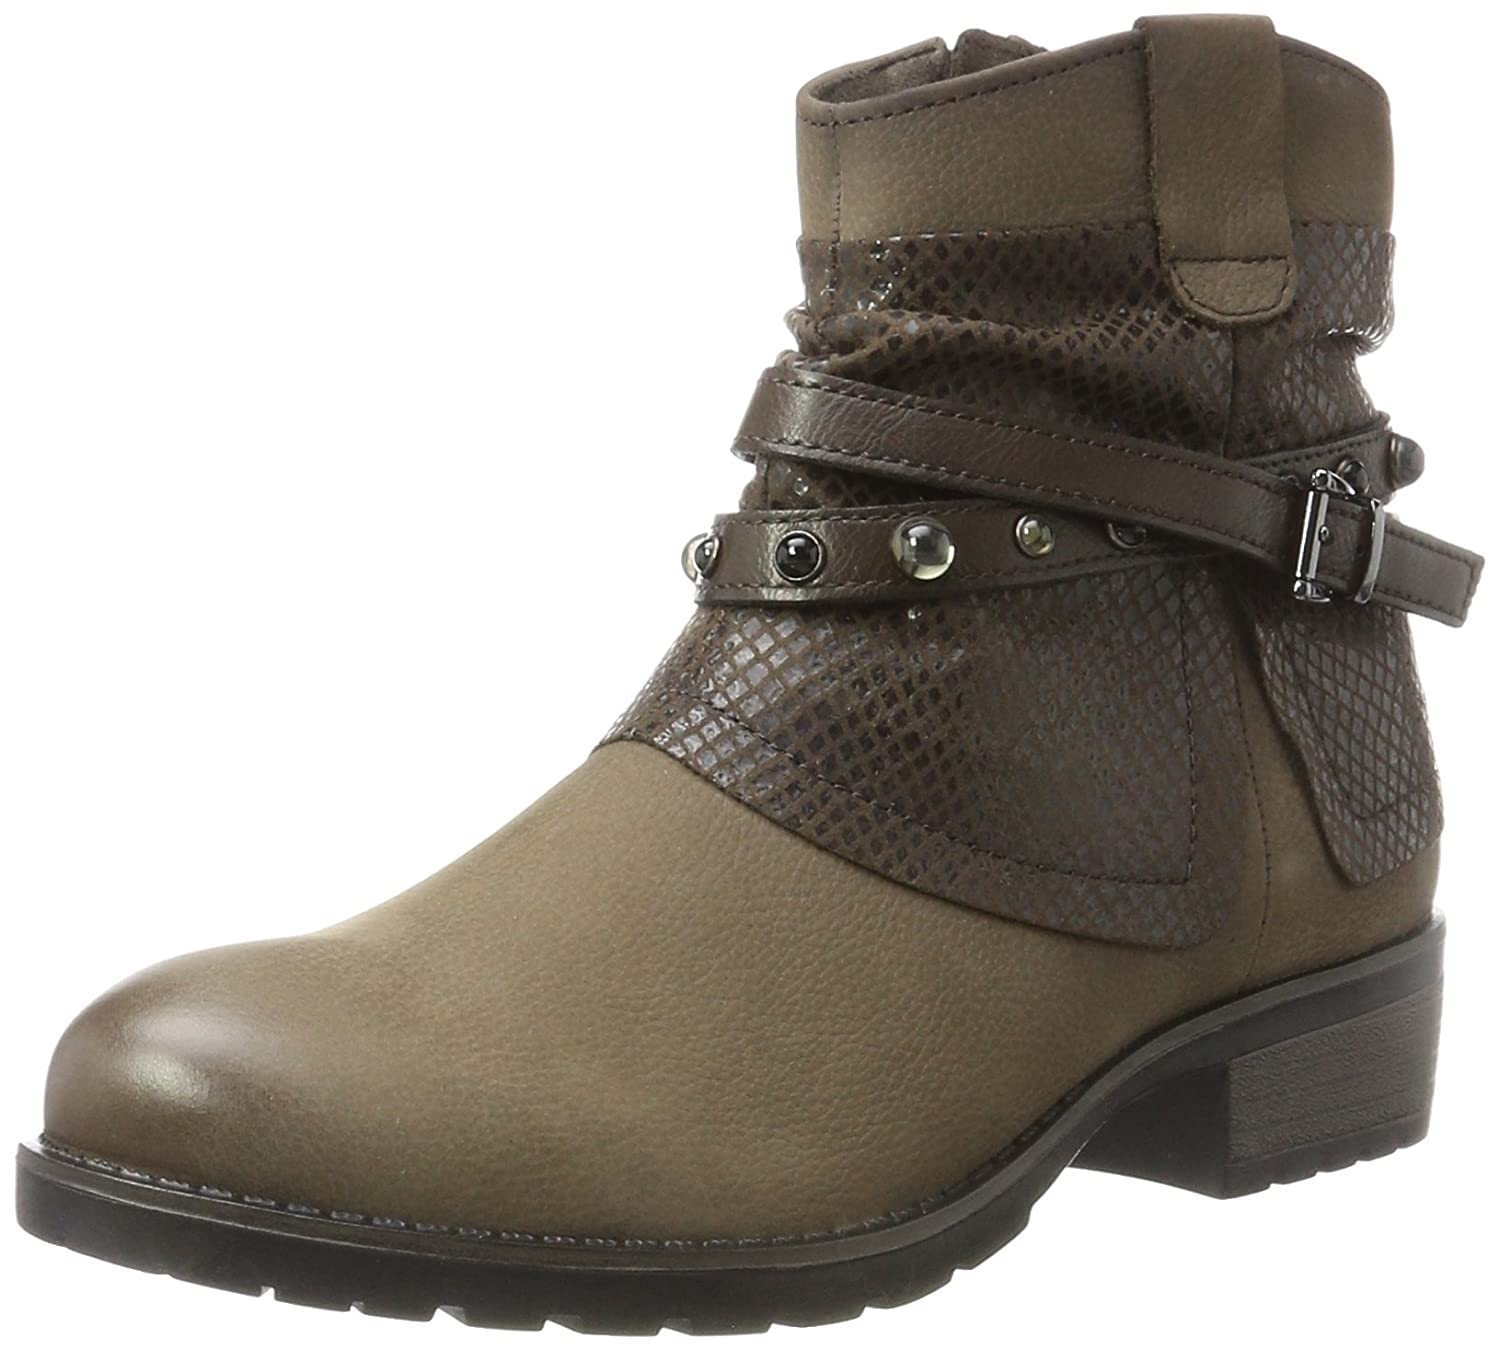 Tamaris Bottes 25311, Bottes Classiques Femme Marron Femme 19997 (Cigar Comb) 20dd937 - therethere.space